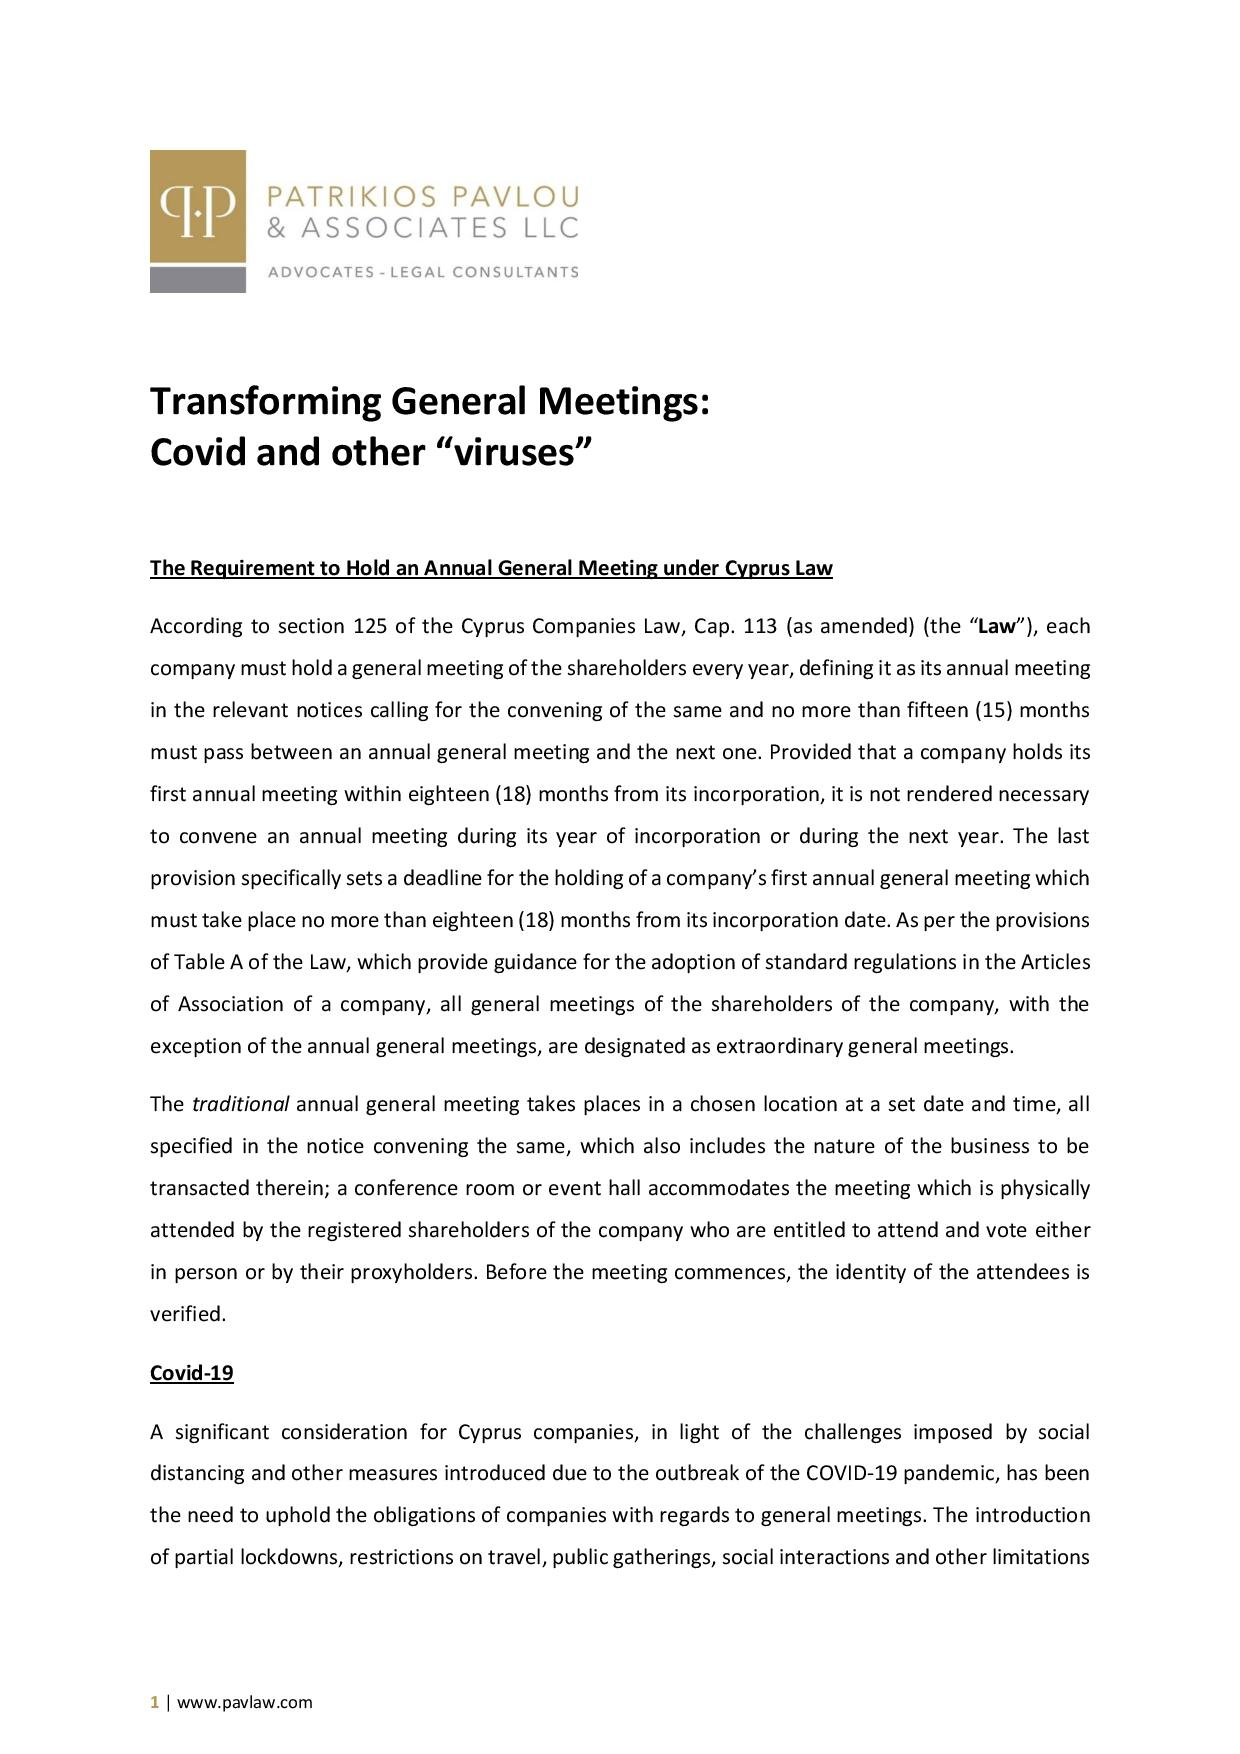 "Patrikios Pavlou & Associates LLC: Transforming General Meetings: Covid and other ""viruses"""